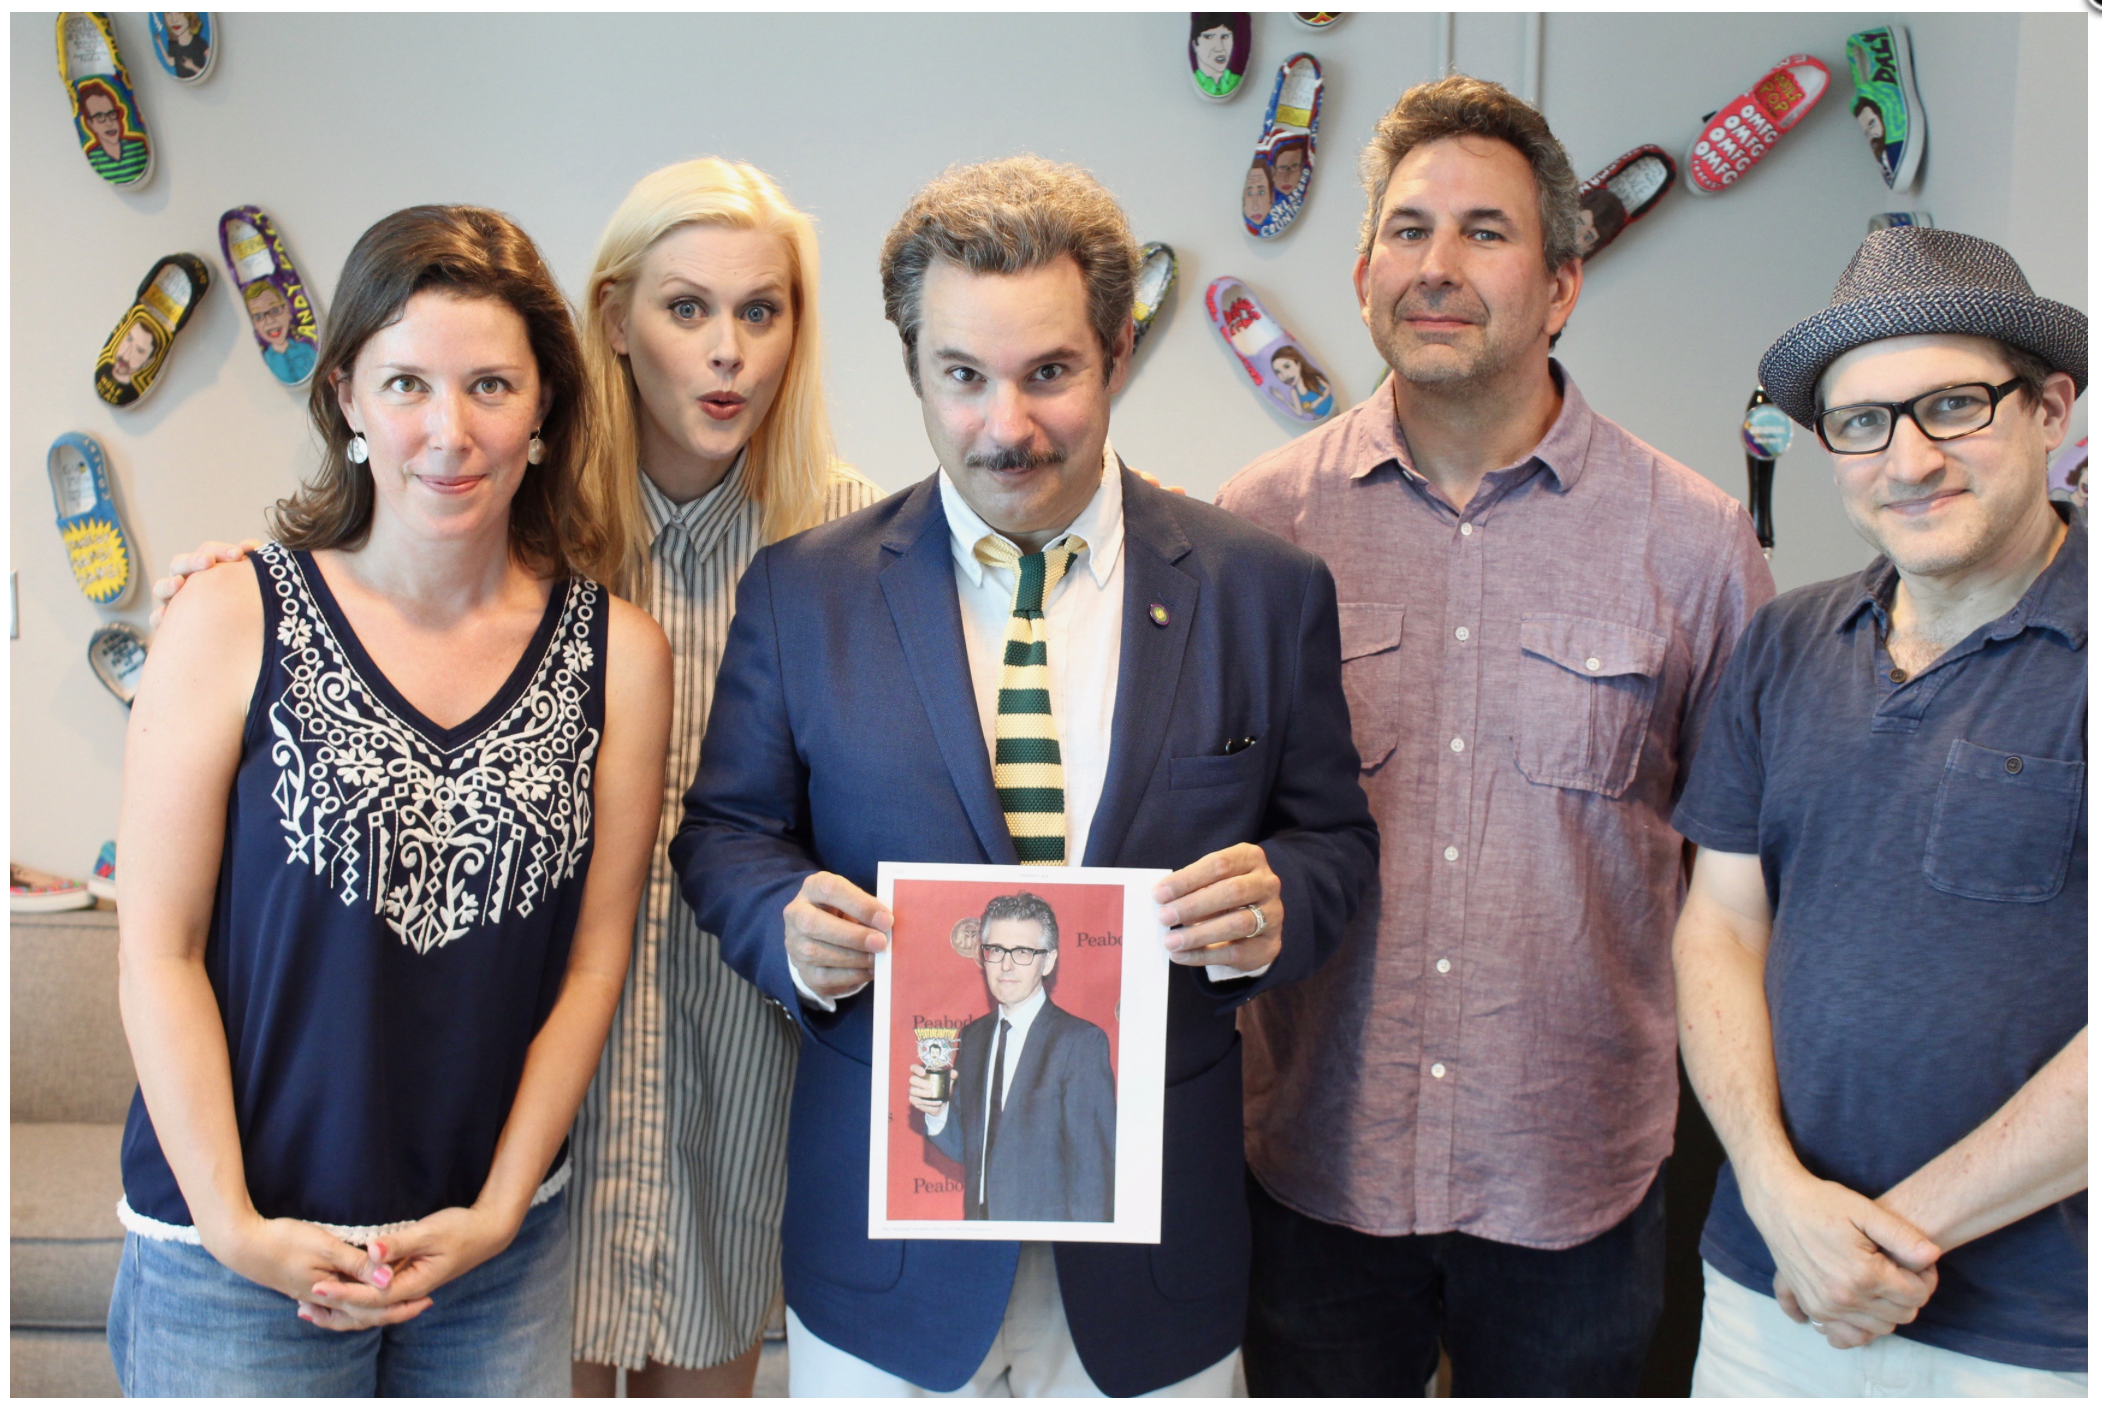 Spontaneanation with Paul F. Tompkins#124 Jury Deliberations(August 7th, 2017) - Paul F. Tompkins welcomes everyone who can hear his voice on this week's Spontaneanation! This time out, Paul's special guest is This American Life host and producer Ira Glass! They chat about what memory from Ira's childhood he wishes he could change, not getting the point of drinking alcohol until he turned 30, and becoming involved with the rerelease of The Adventures of Chickenman. Paul is then joined by Little Janet Varney, Jean Villepique, and Craig Cackowski, to improvise a story set in Jury Deliberations. And as always, Eban (only the best) Schletter scores it all on piano!